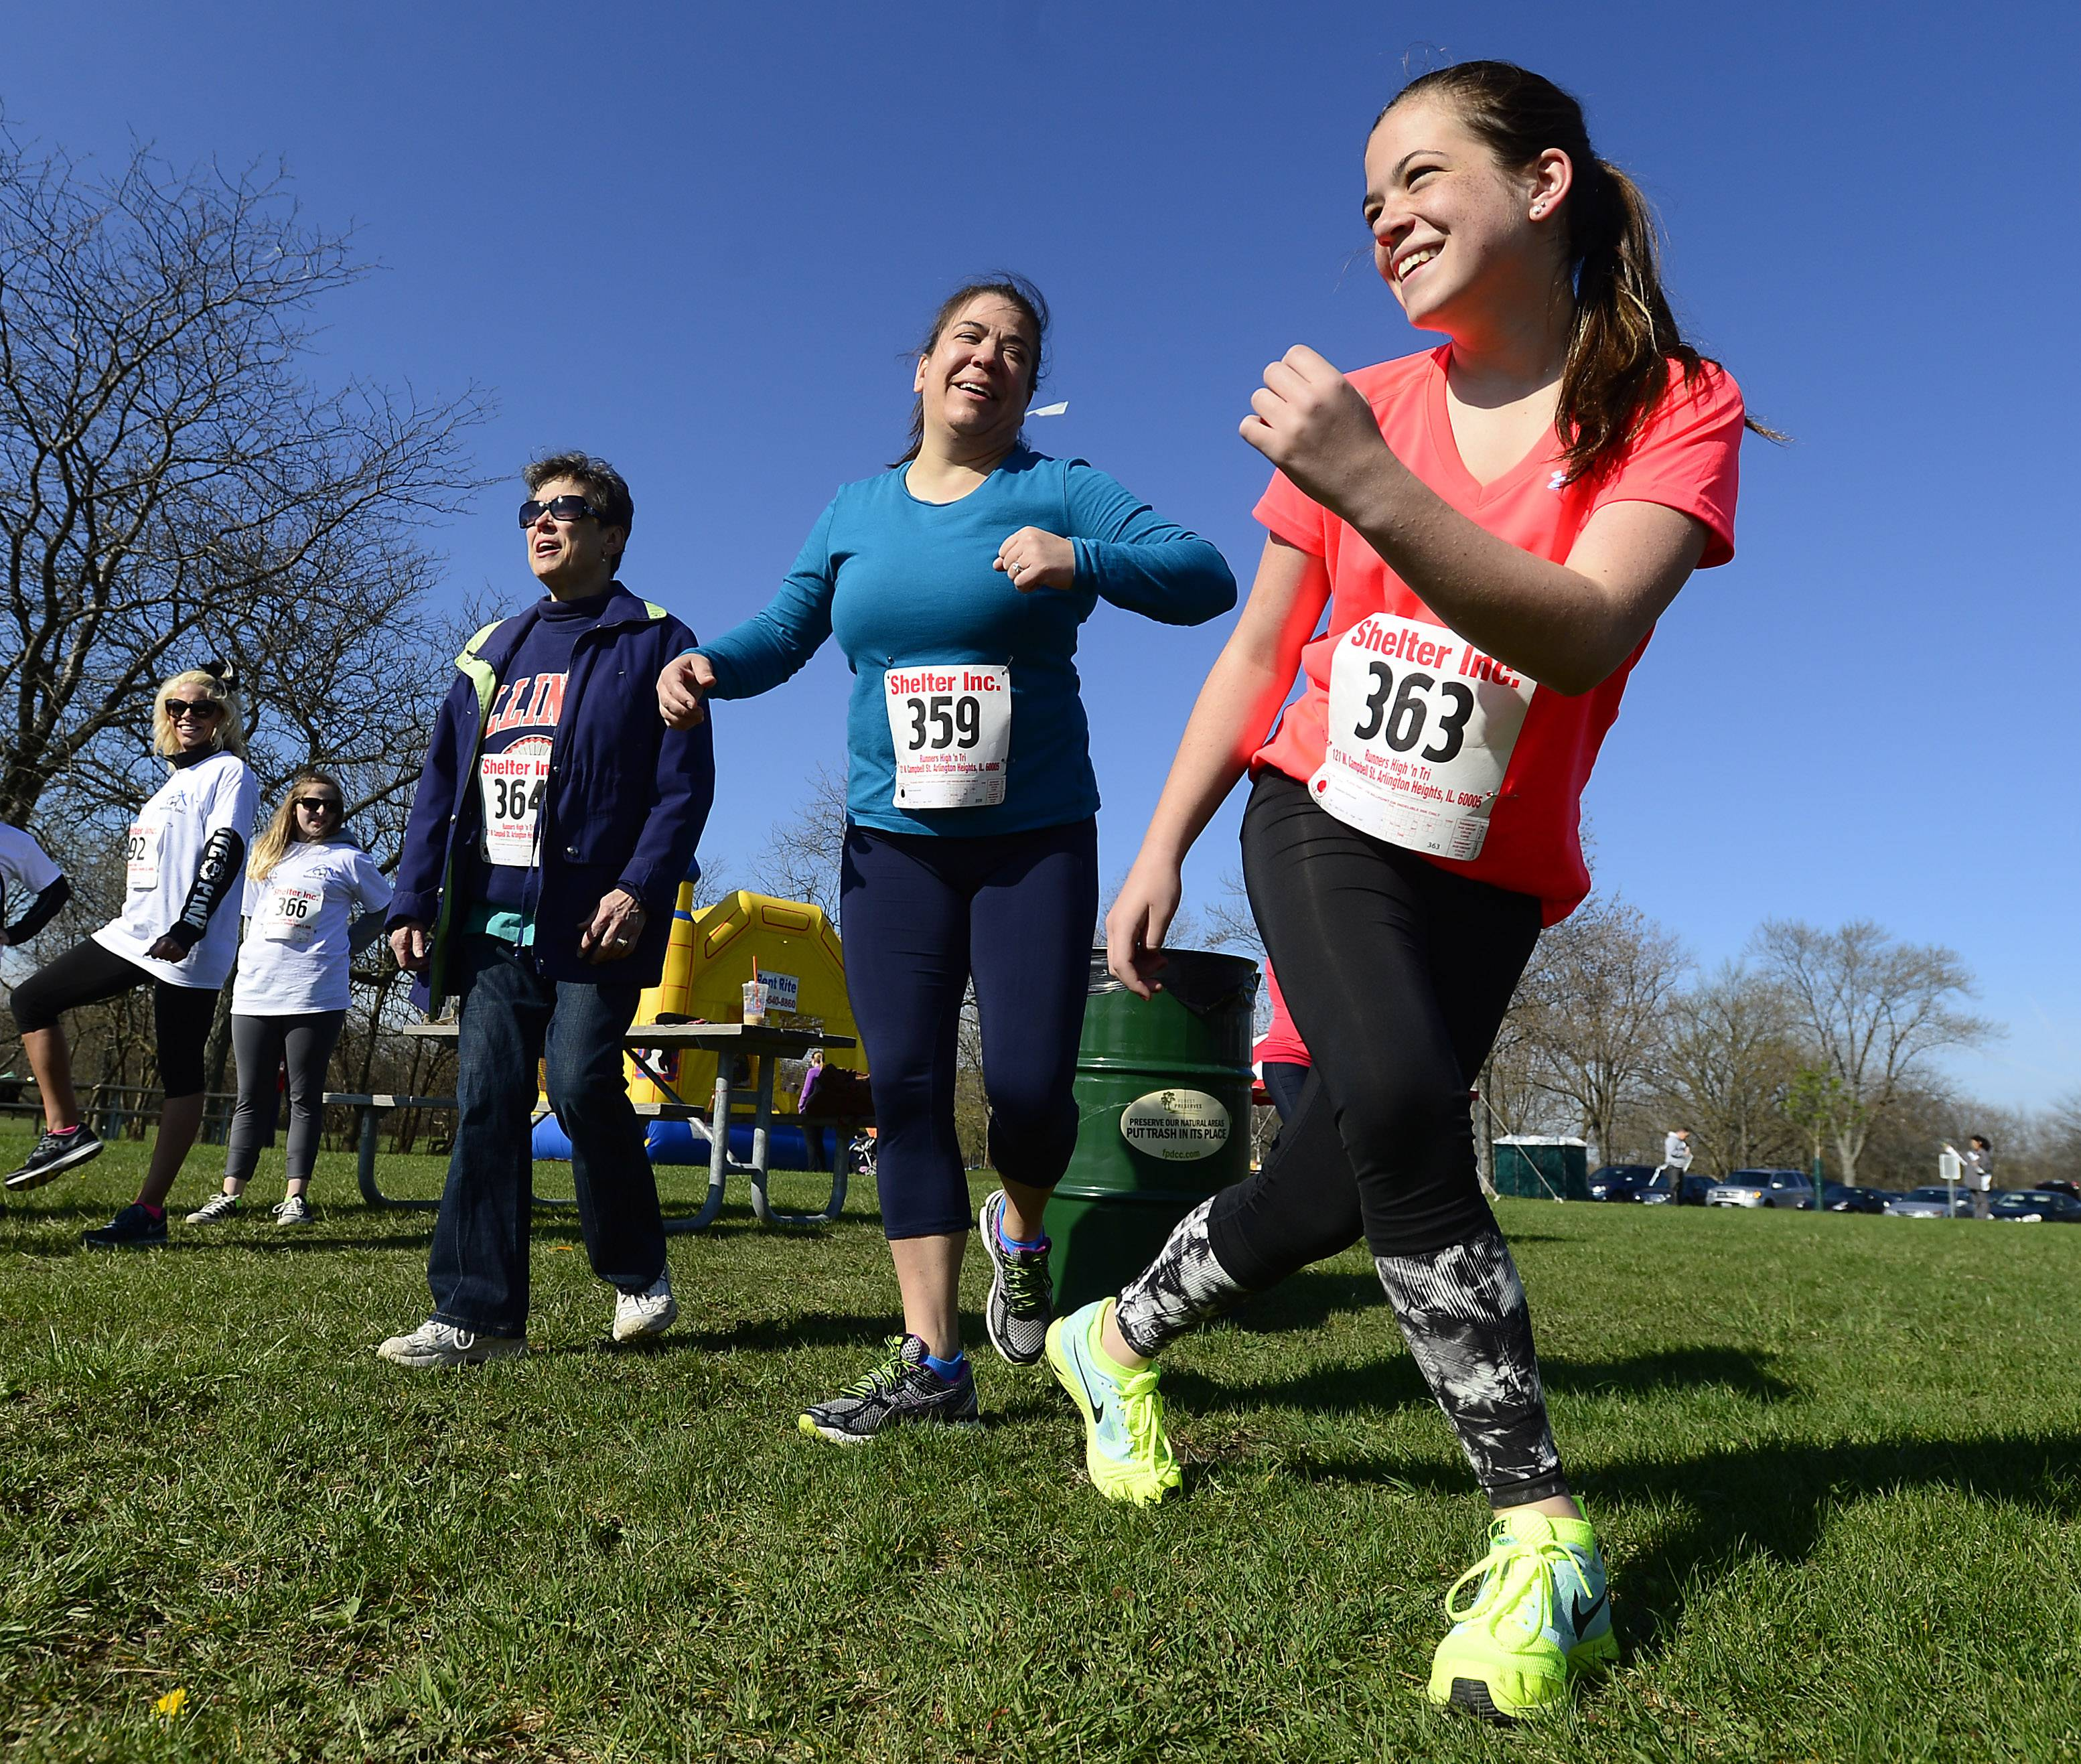 Alex Bartkowiak, 14, and her mom Vicki Bartkowiak and grandmother Karen Wonak of Elk Grove Village warm up before the start of the Shelter 5K Run/Walk Saturday in Busse Woods.